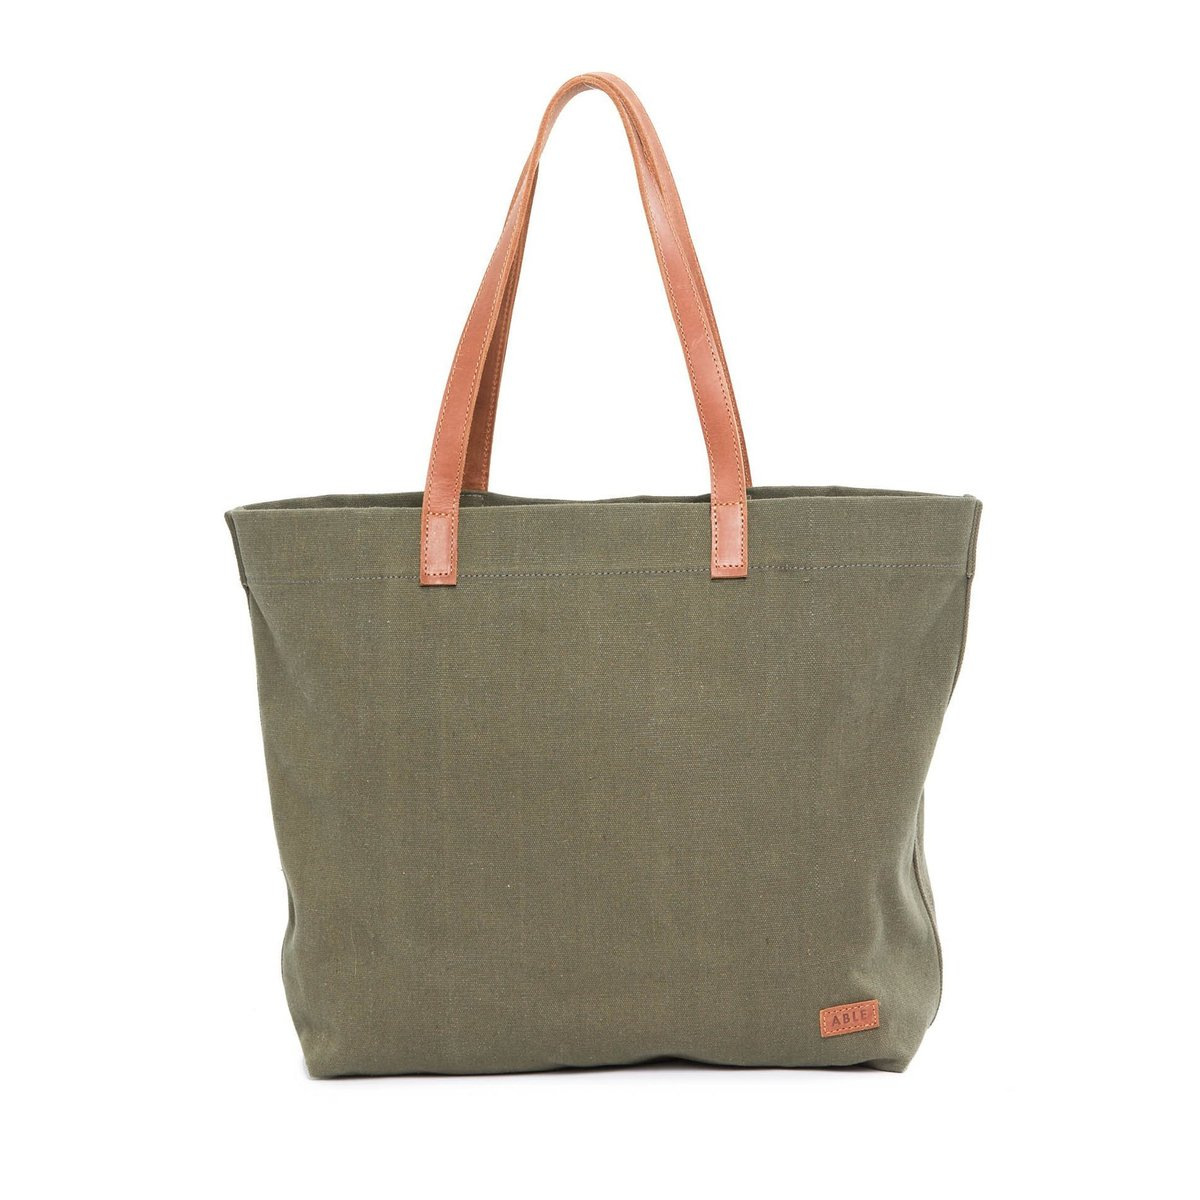 Made in Ethiopia, the Yodit Canvas tote has an olive green color and soft canvas texture. It's just one of the many useful products  Rethreaded  has. Rethreaded began as a partnership with City Rescue Mission of Jacksonville, Florida to hire women who had been incarcerated or trafficked and provide steady employment for them.